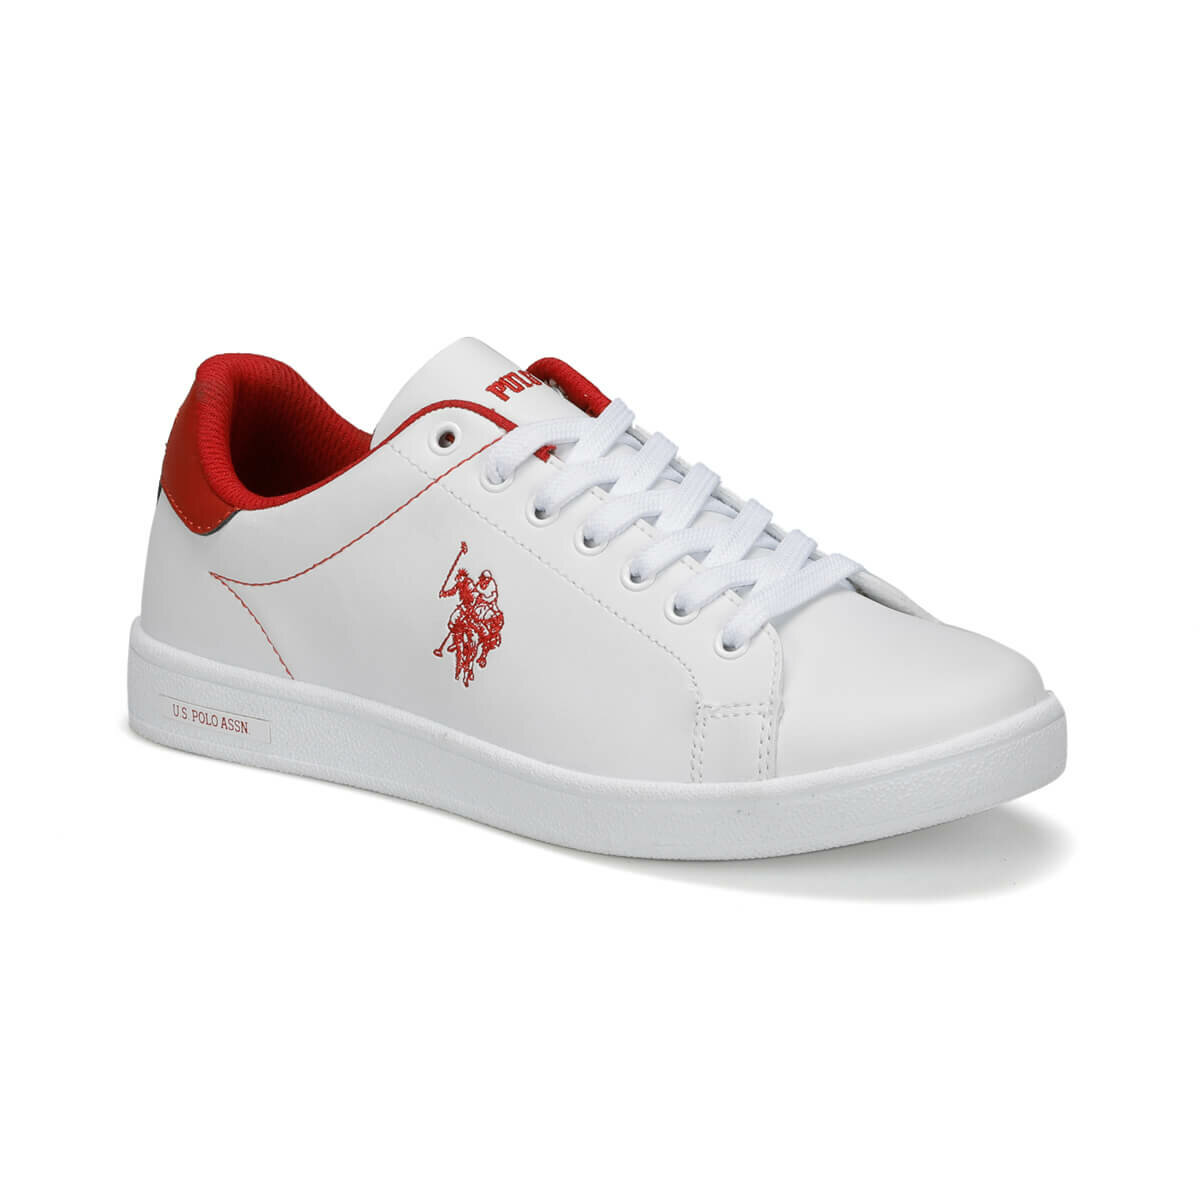 FLO STEVE 9PR White Women 'S Sneaker Shoes U.S. POLO ASSN.